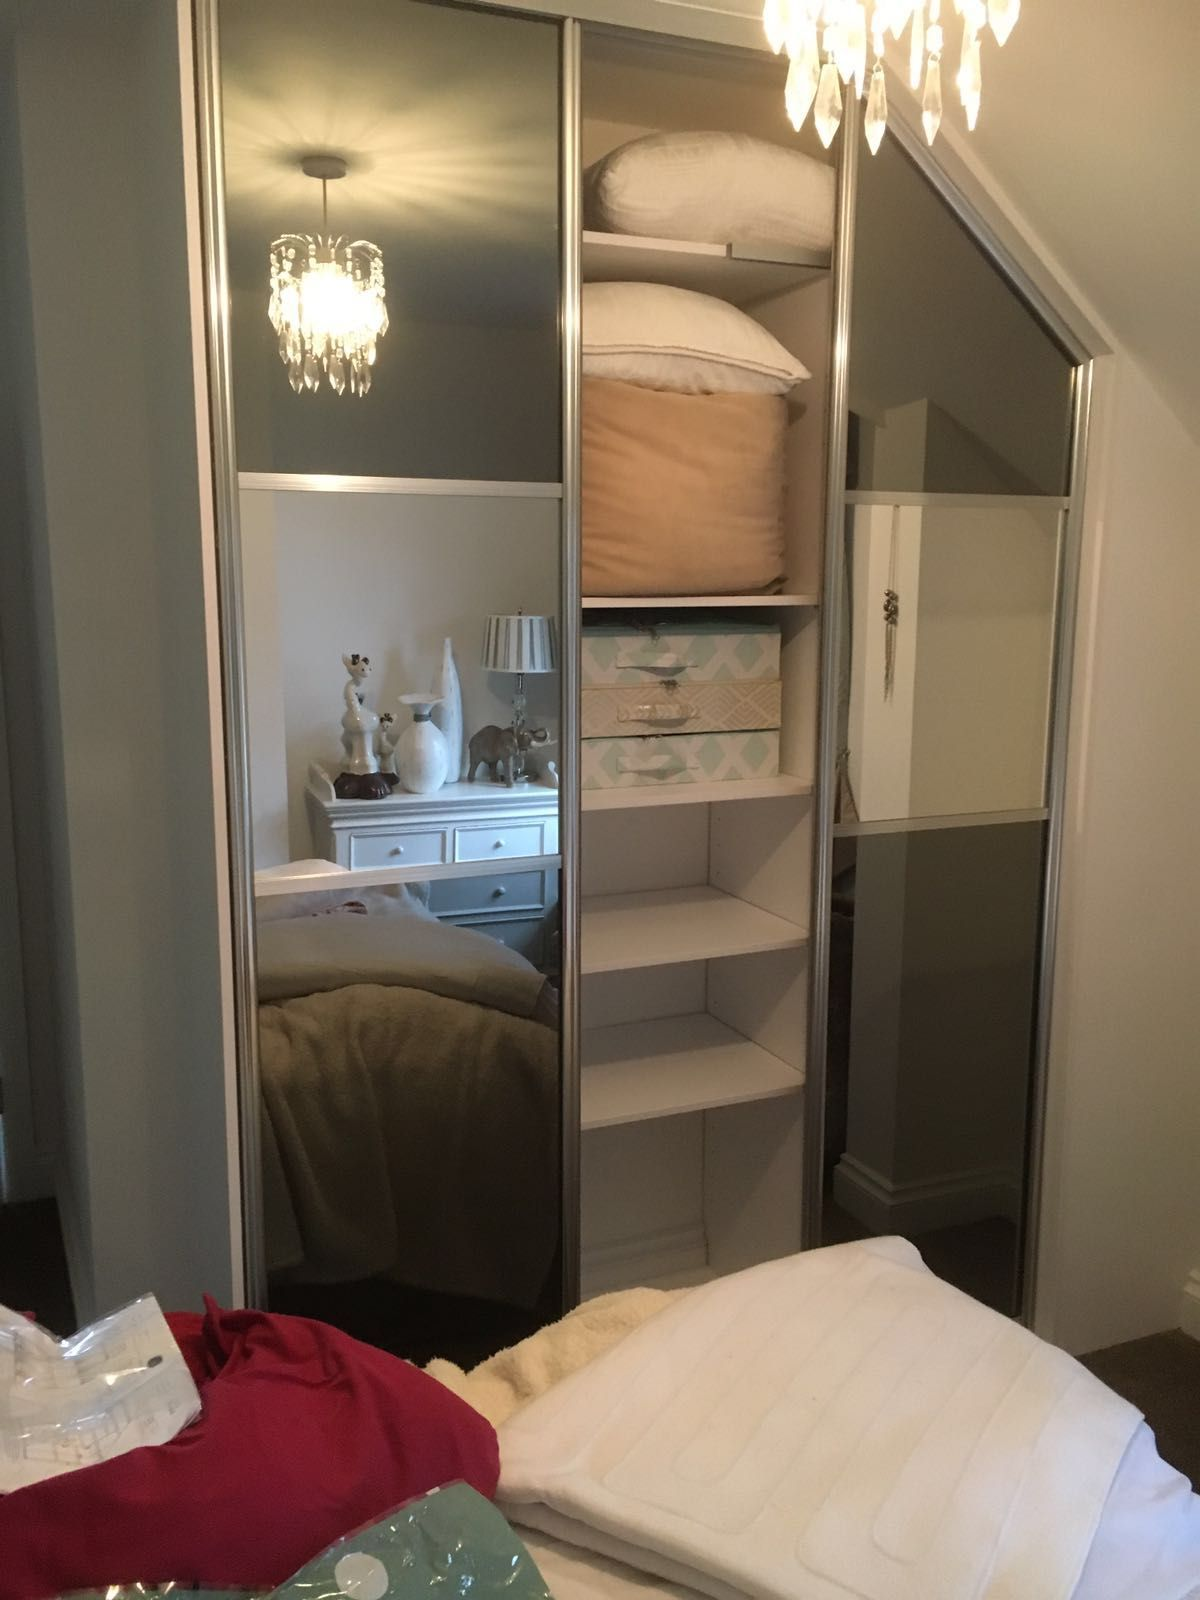 Room Grey mirrored sliding wardrobe with hanging